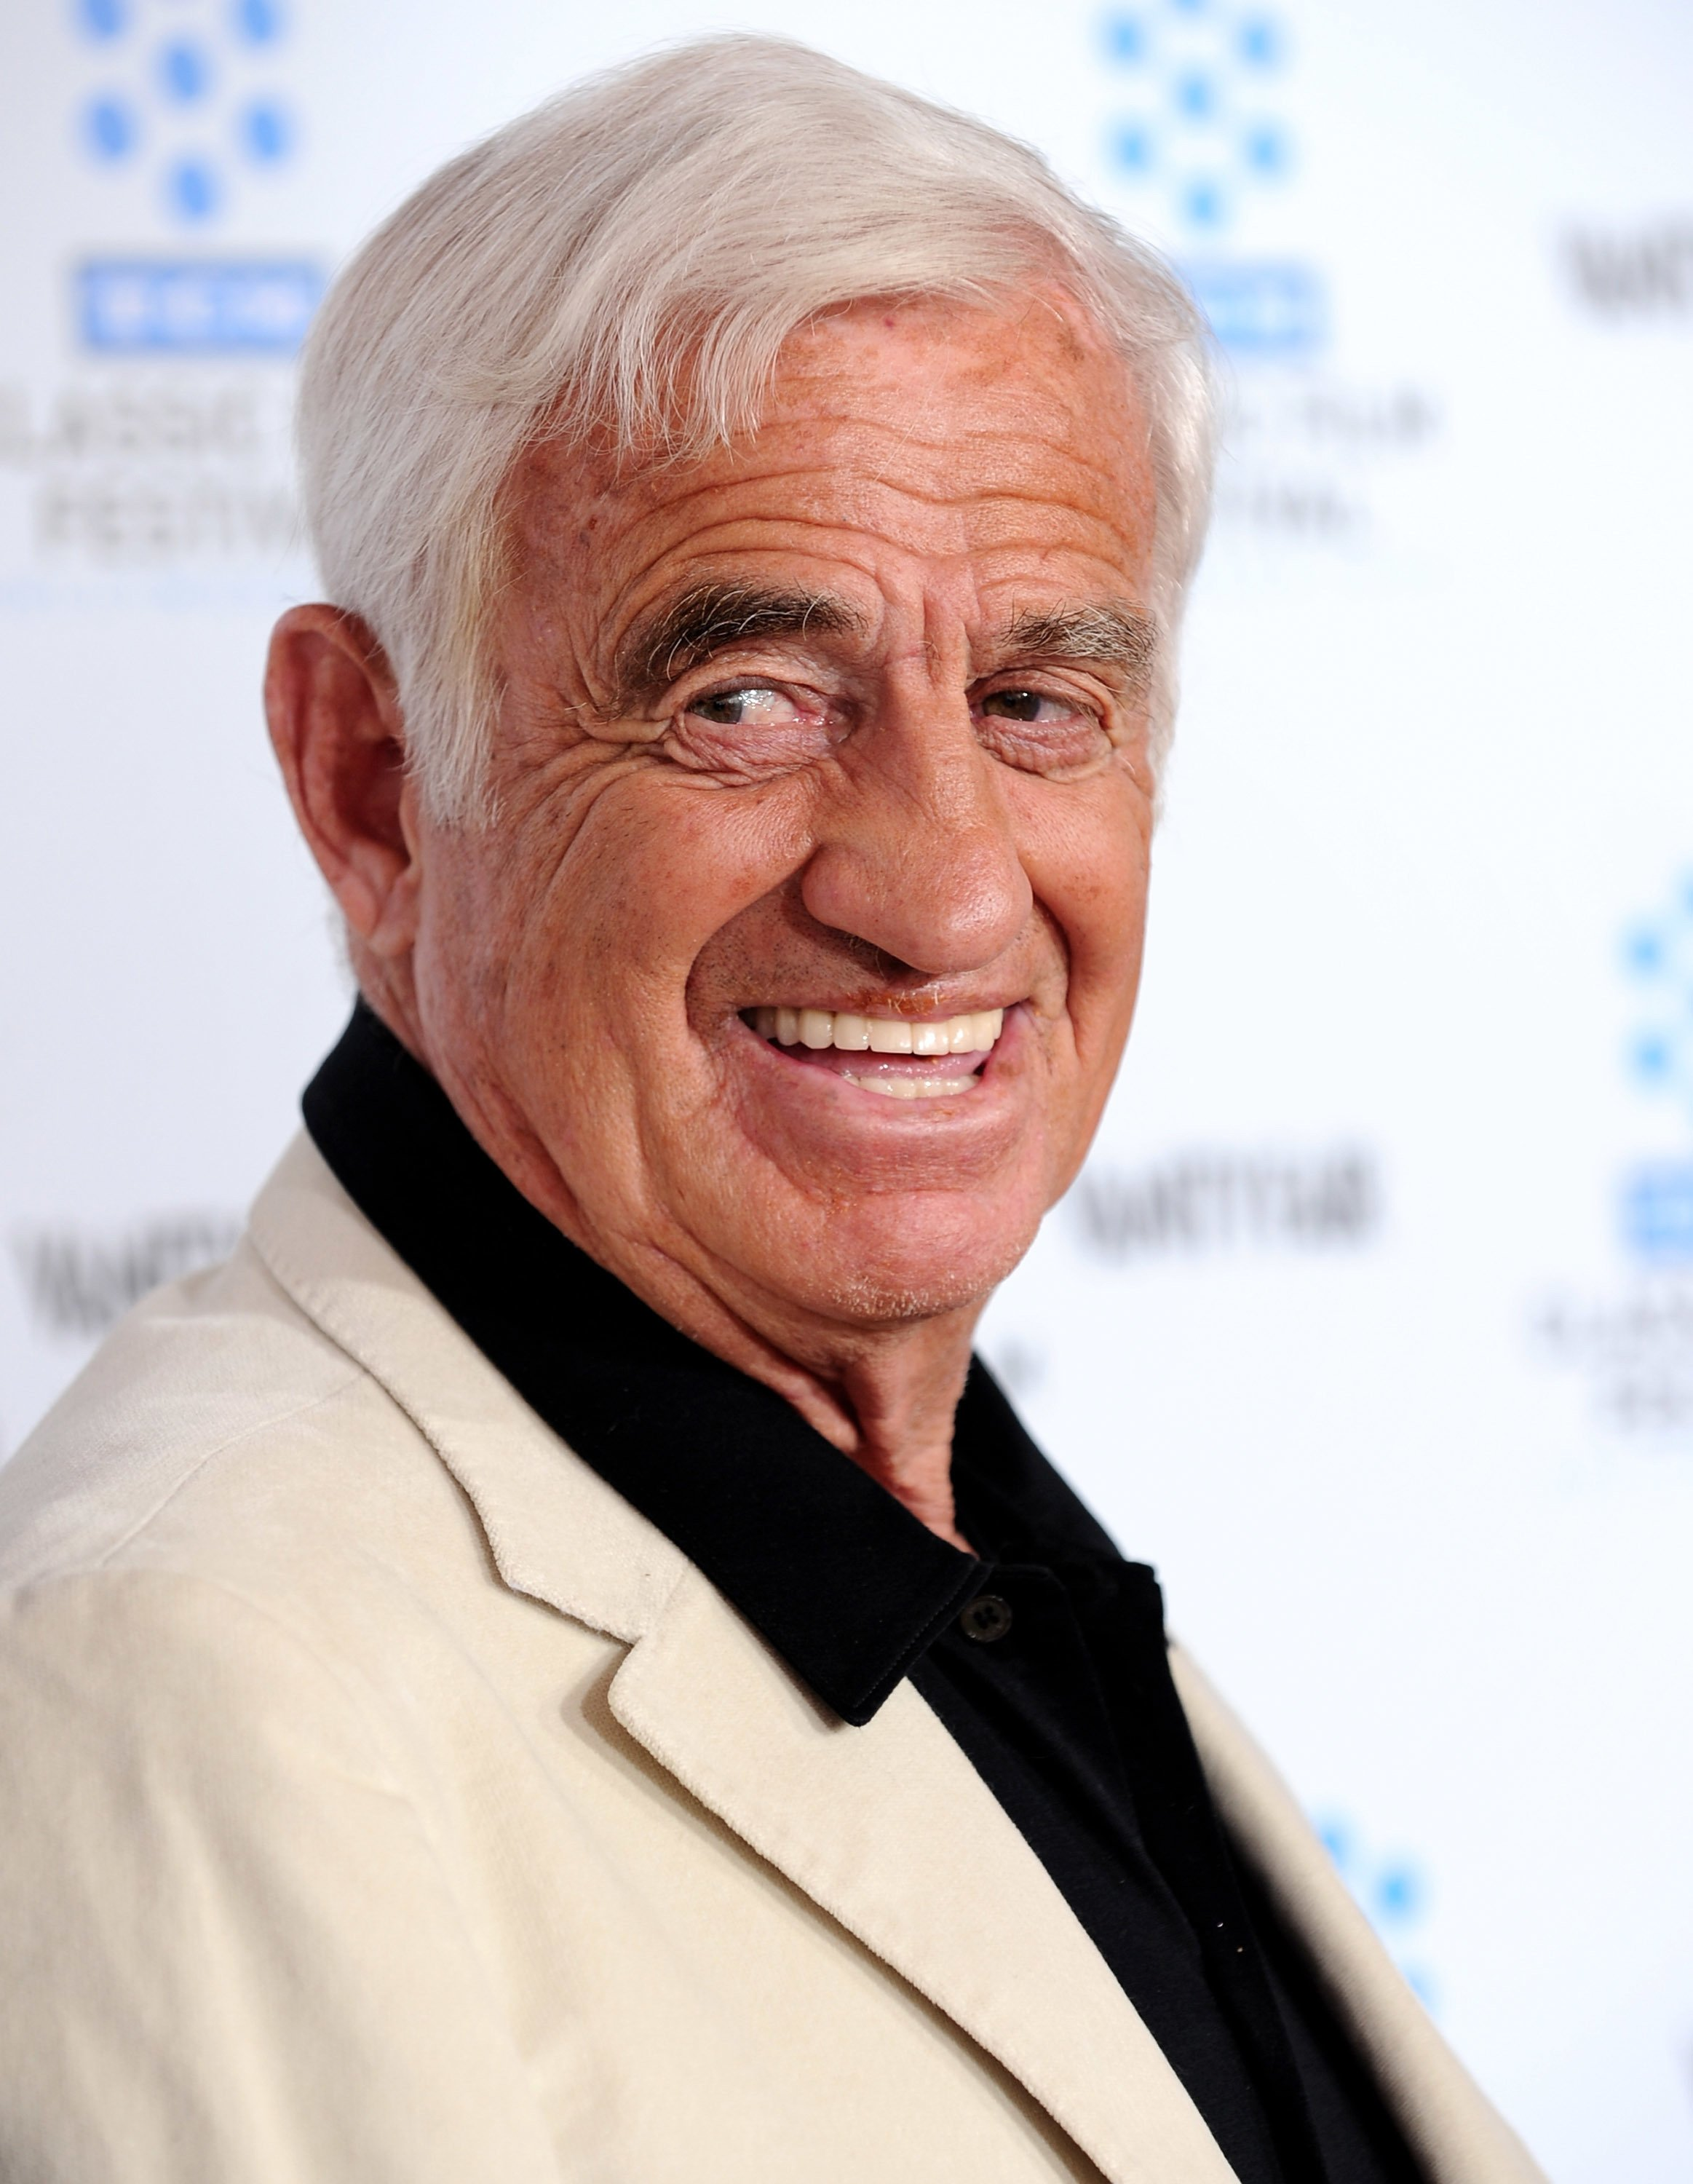 L'acteur Jean-Paul Belmondo au Grauman's Chinese Theatre le 22 avril 2010 à Hollywood, Californie. | Photo : Getty Images